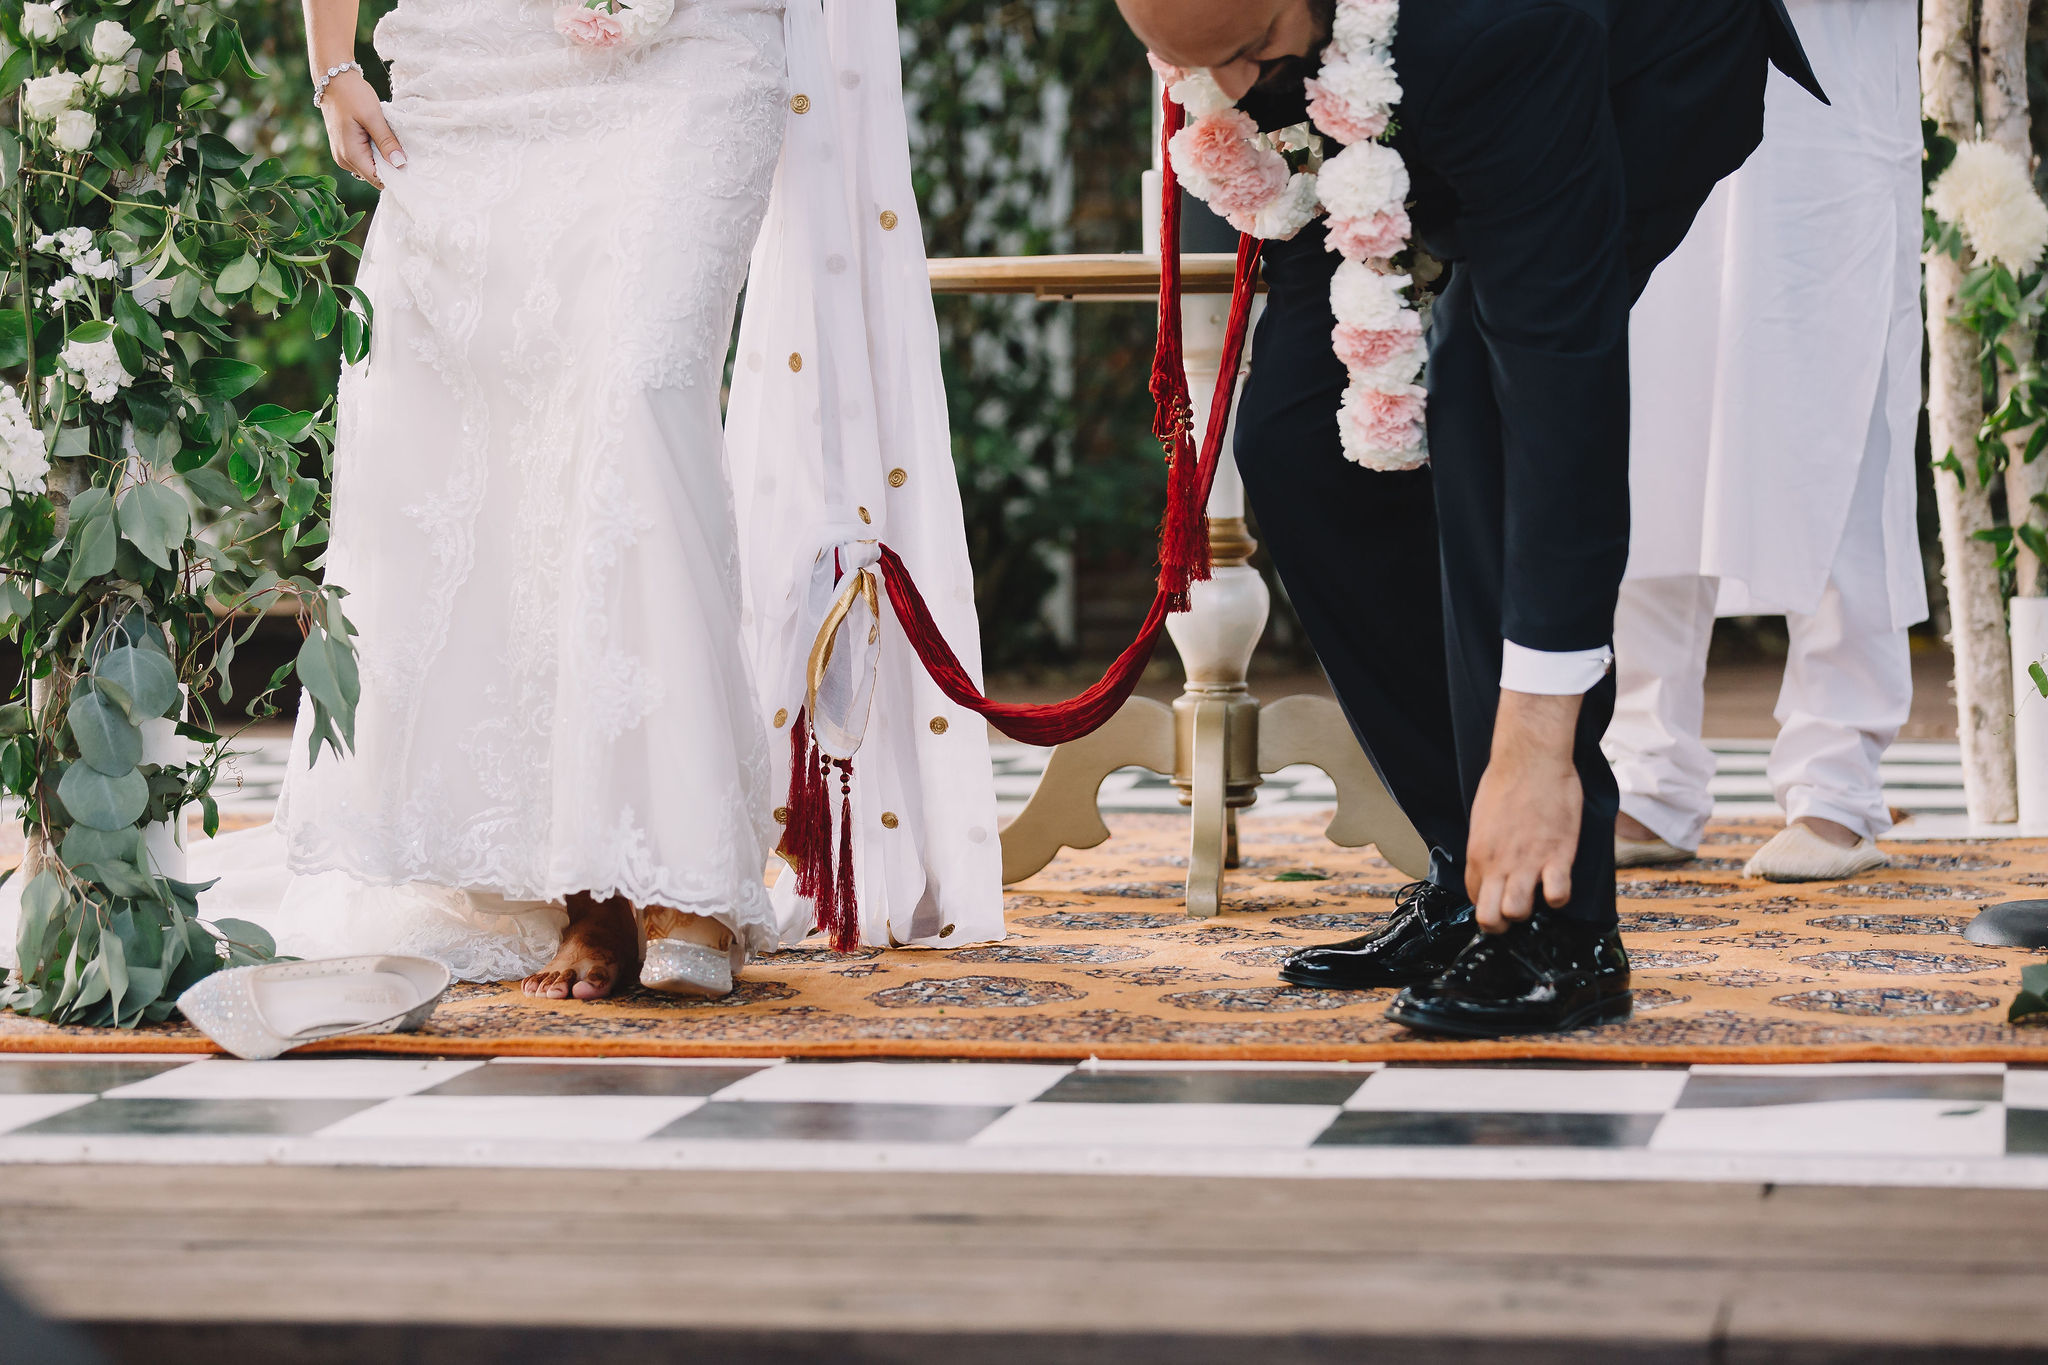 Jimmy removes his shoes for the wedding ceremony.